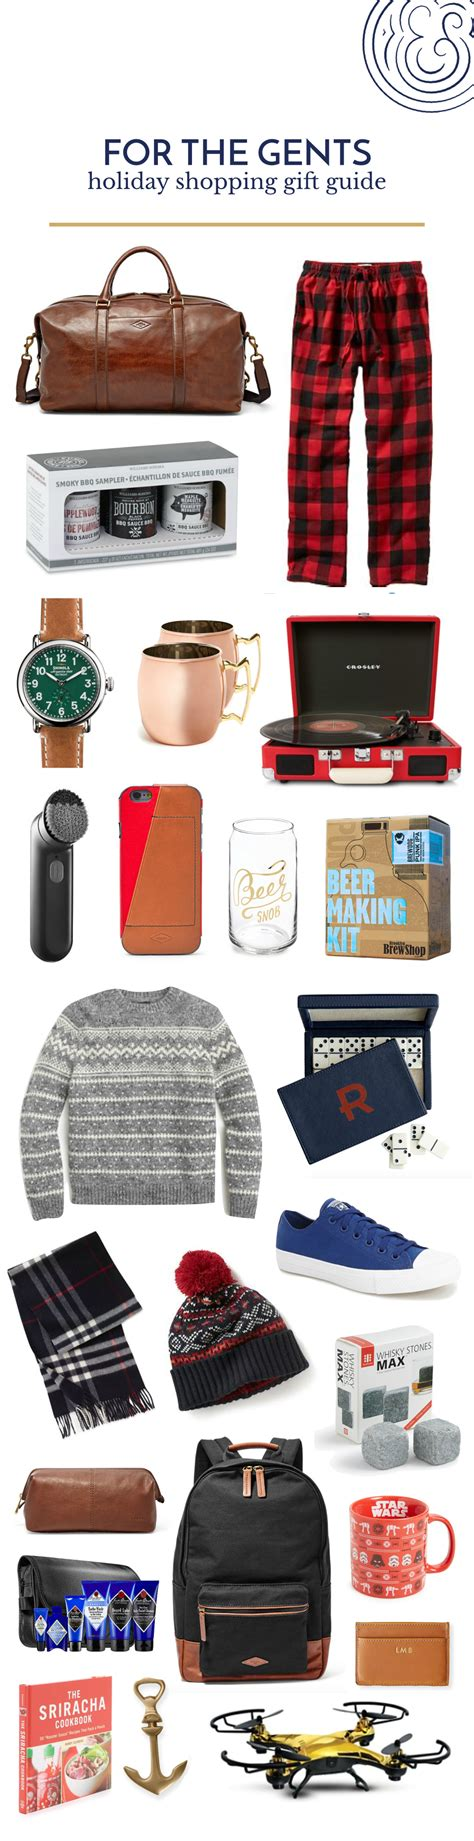 gift guide for the gents pretty fun